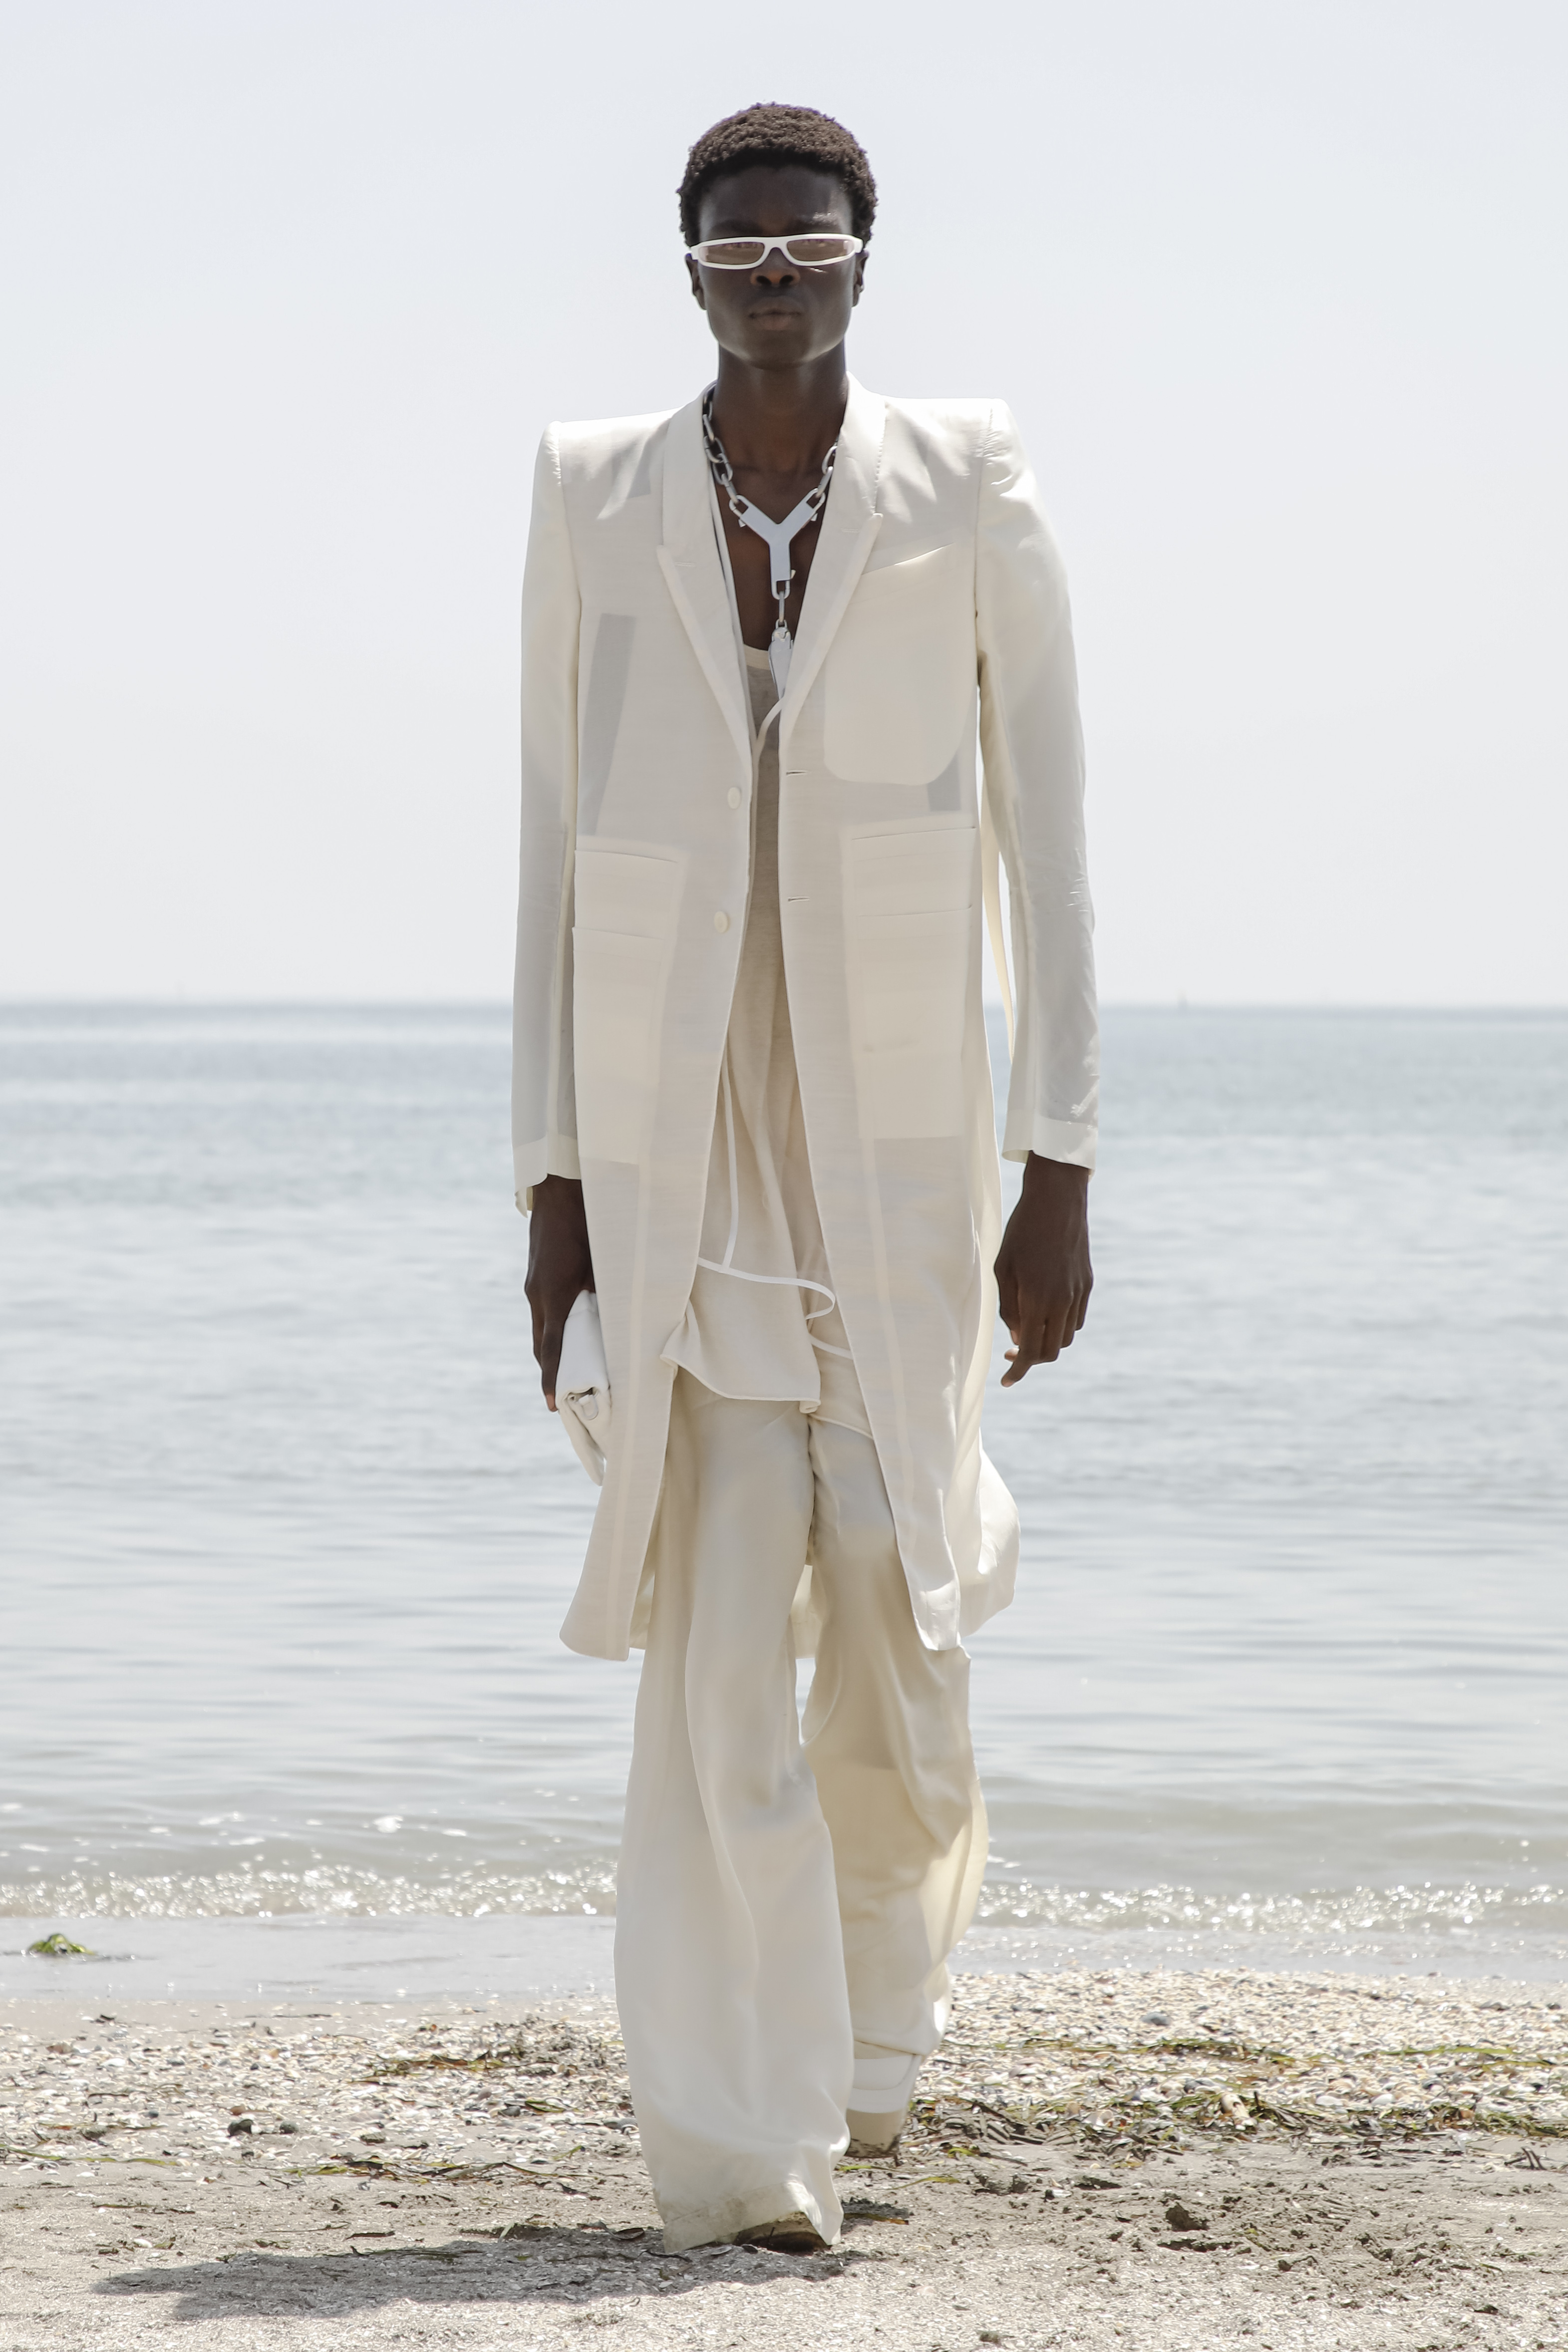 A model wearing a full look from Rick Owens' S22 collection